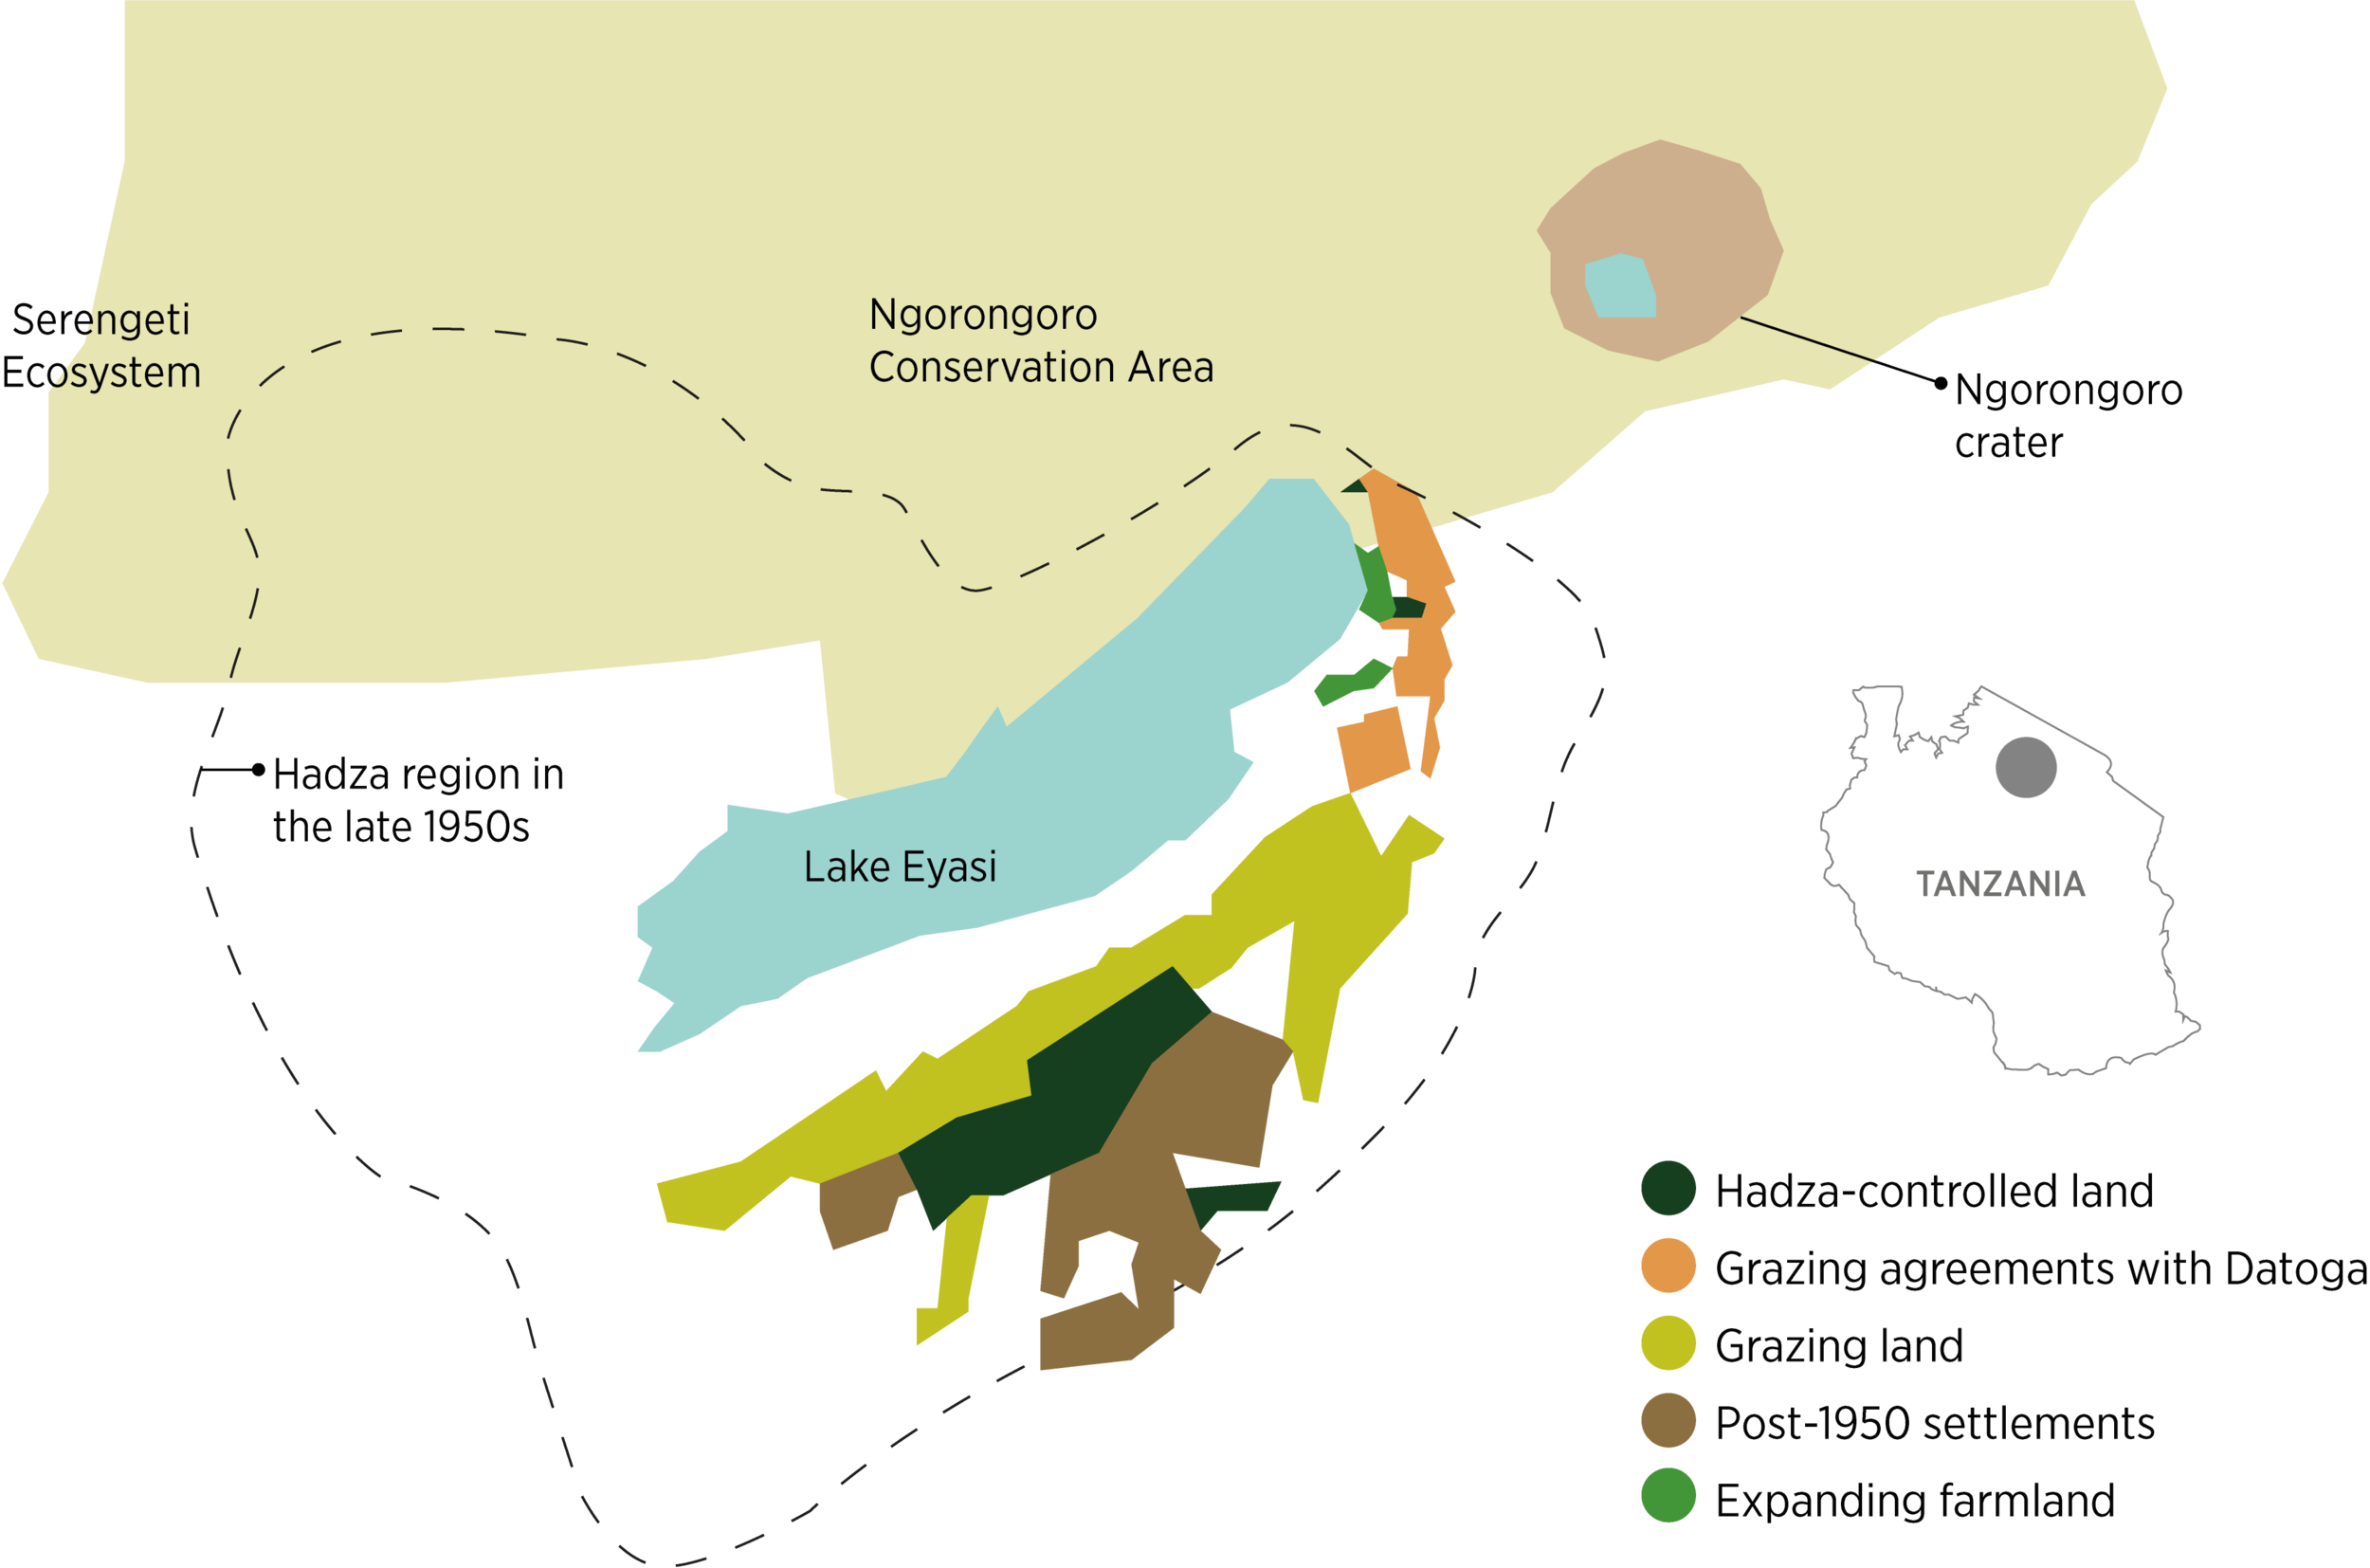 Map: UCRT's work on securing Hadza and Datoga land rights has helped create a corridor providing landscape connectivity and facilitating wildlife movement between the Yaeda Valley and the Ngorongoro Conservation Area.